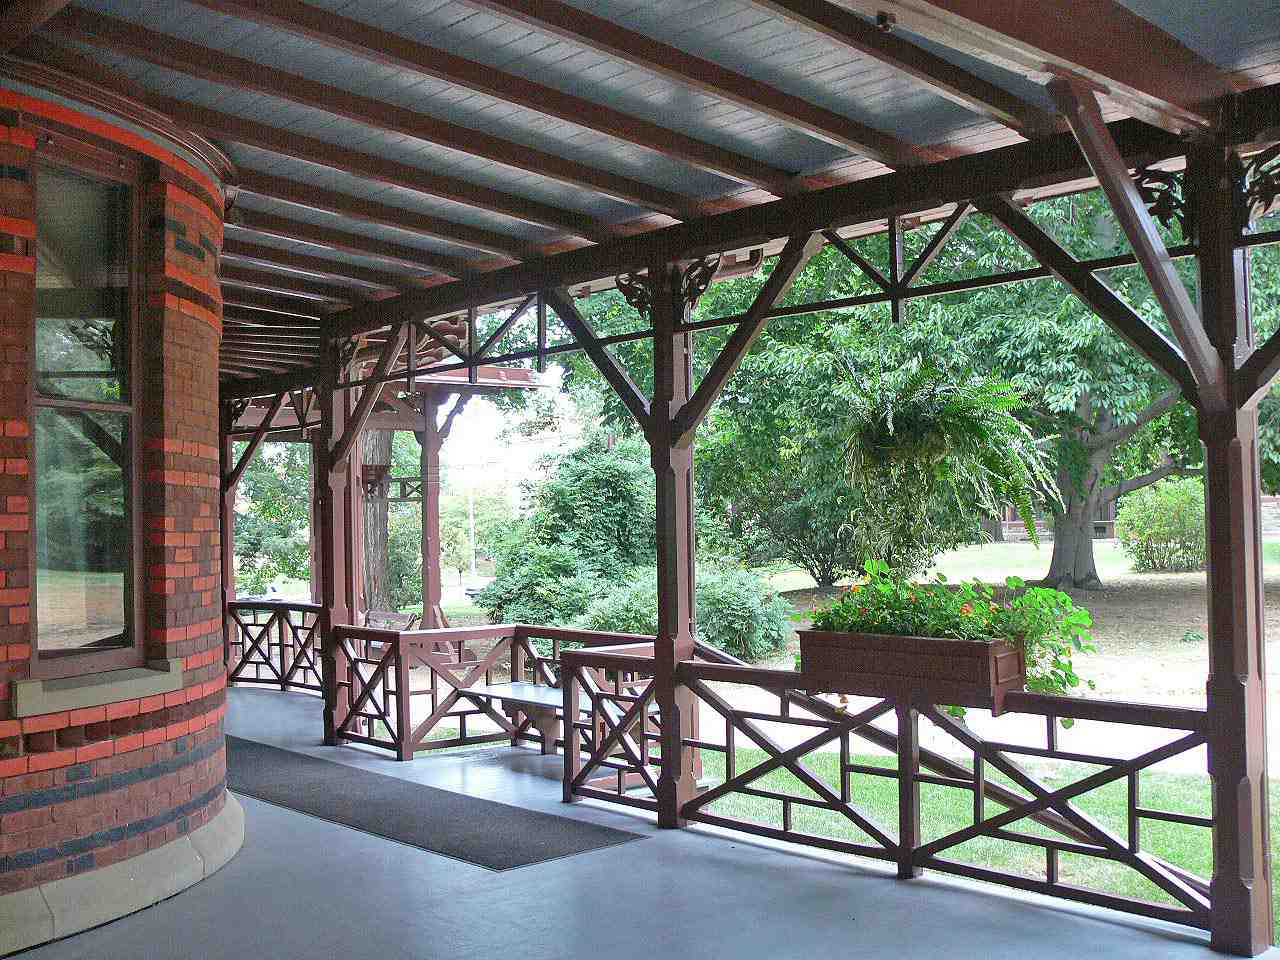 Decorative stickwork forms geometric patterns around the expansive porch of Mark Twain's home.